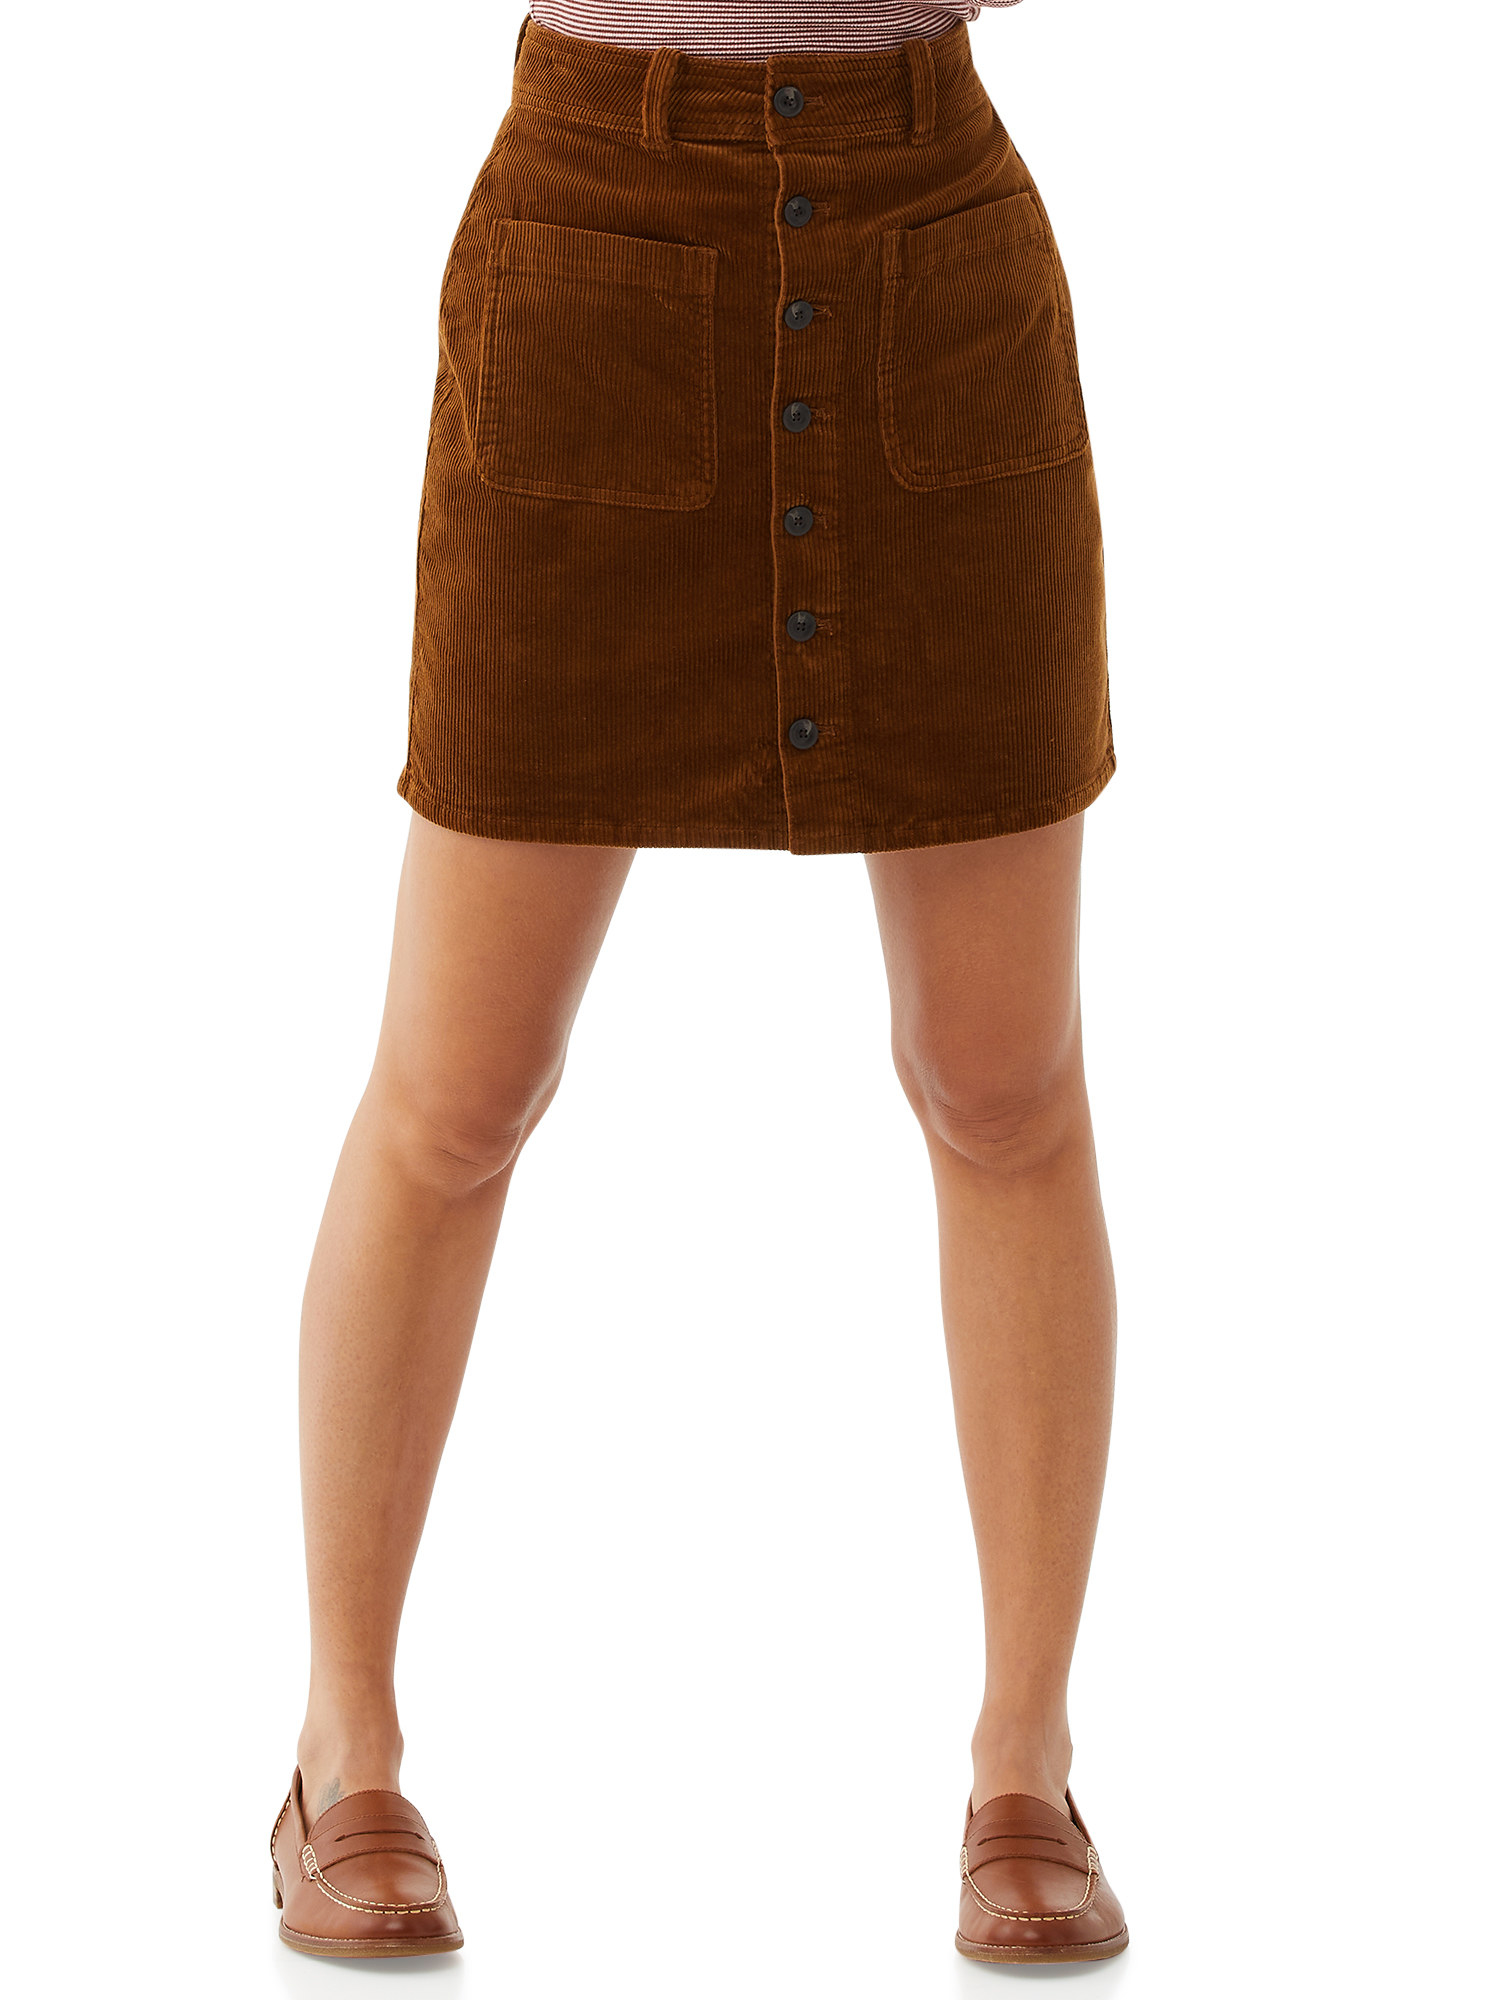 Model in brown corduroy button-front skirt with loafers